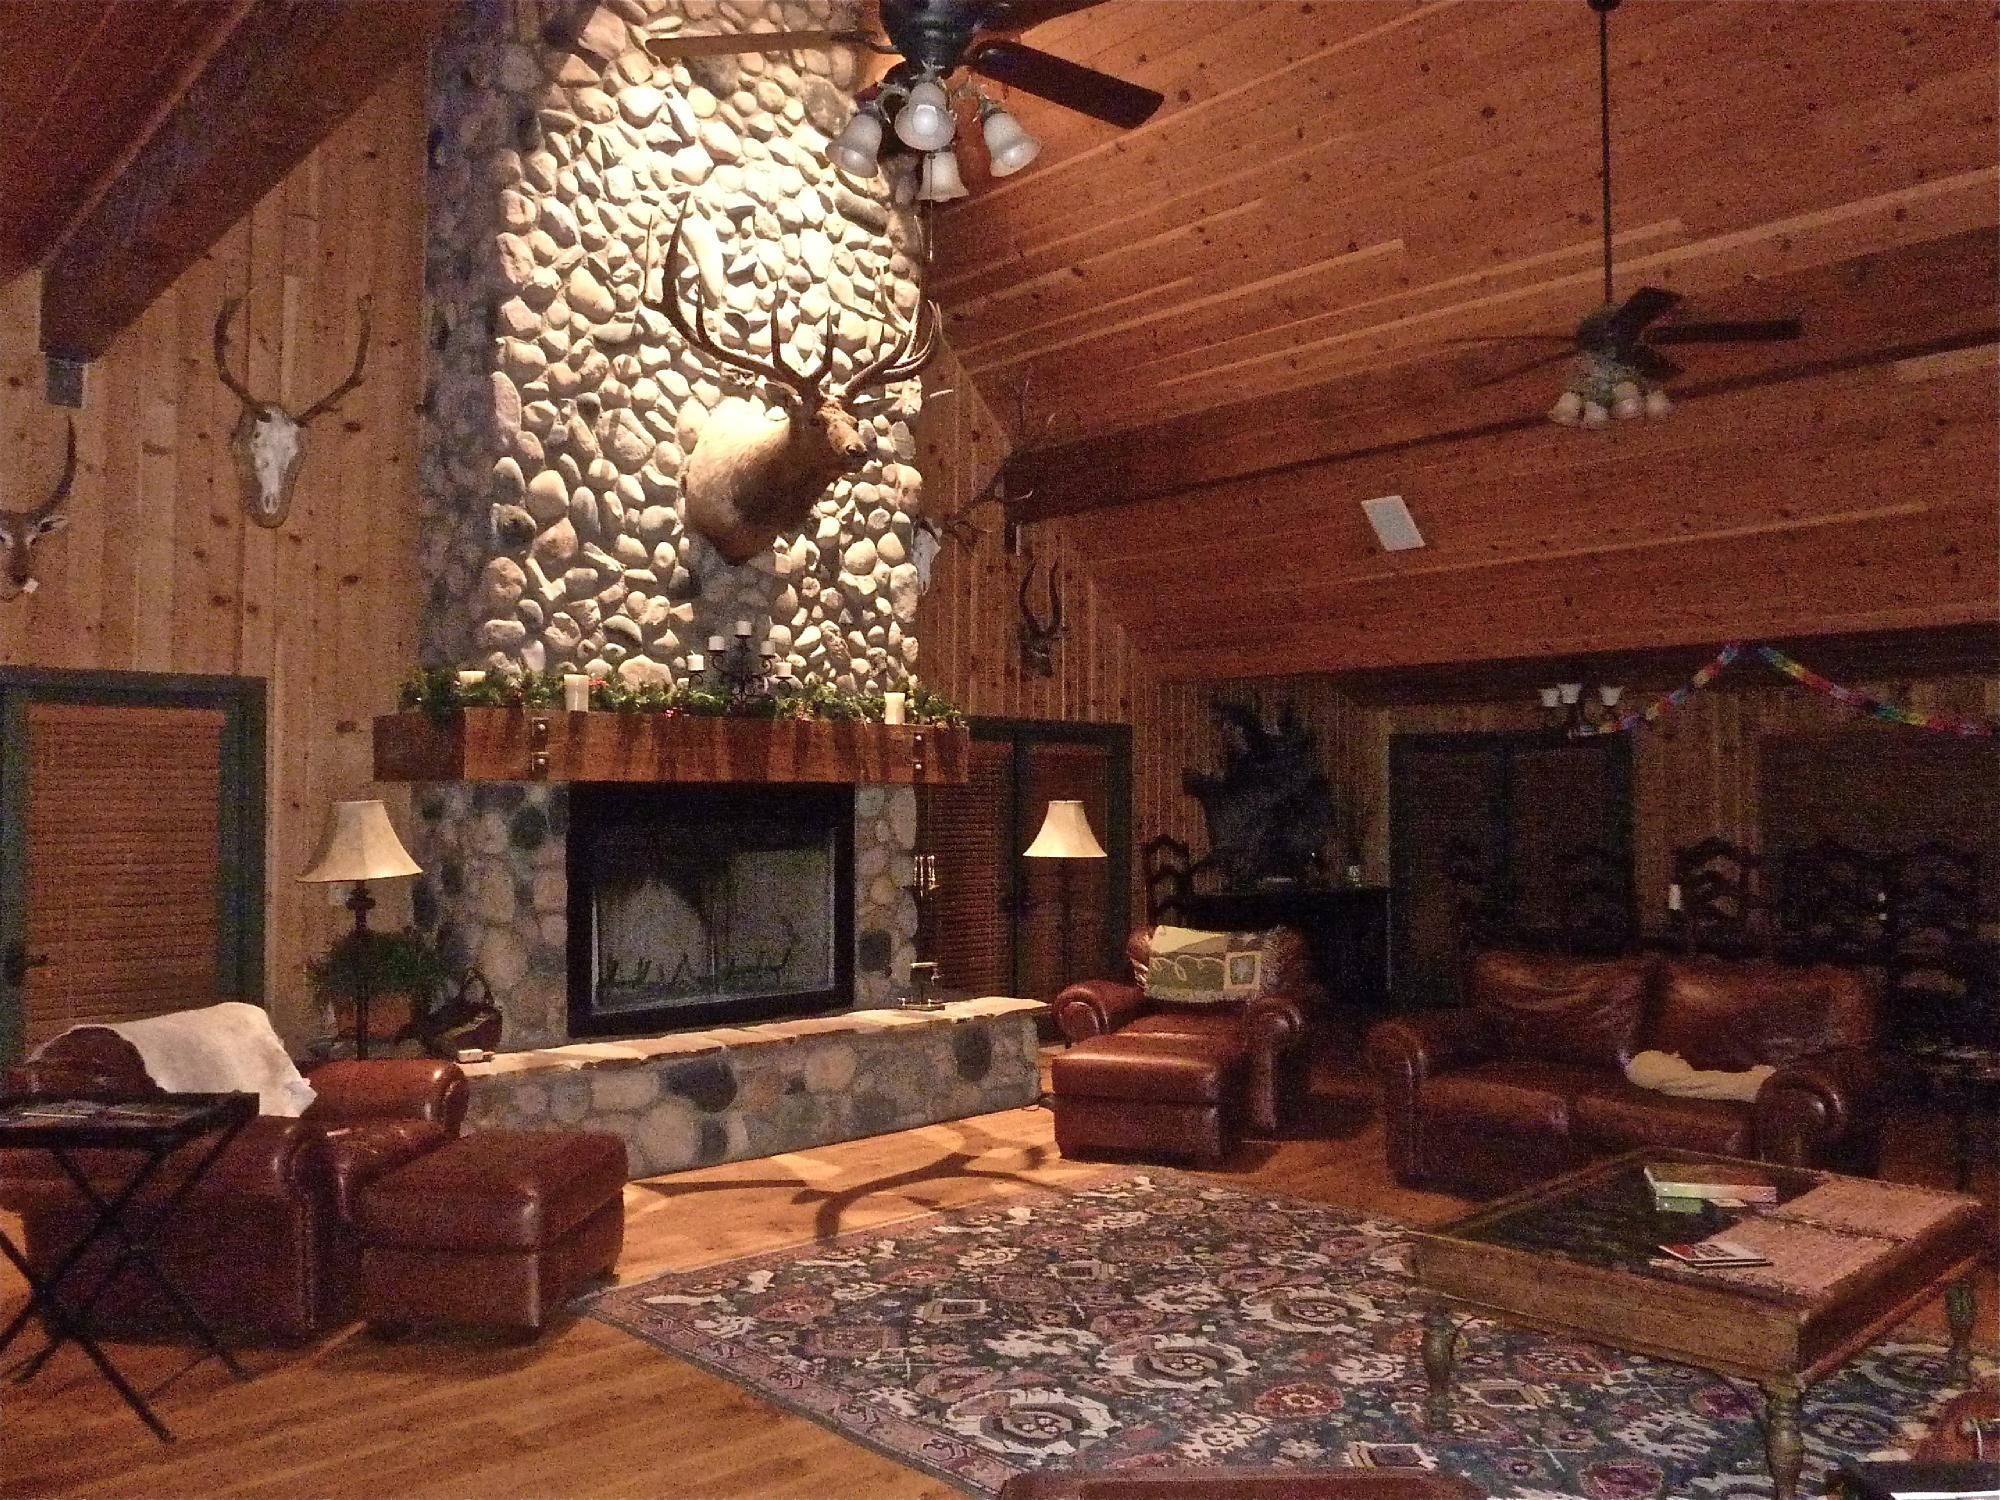 Cherry Creek Lodge